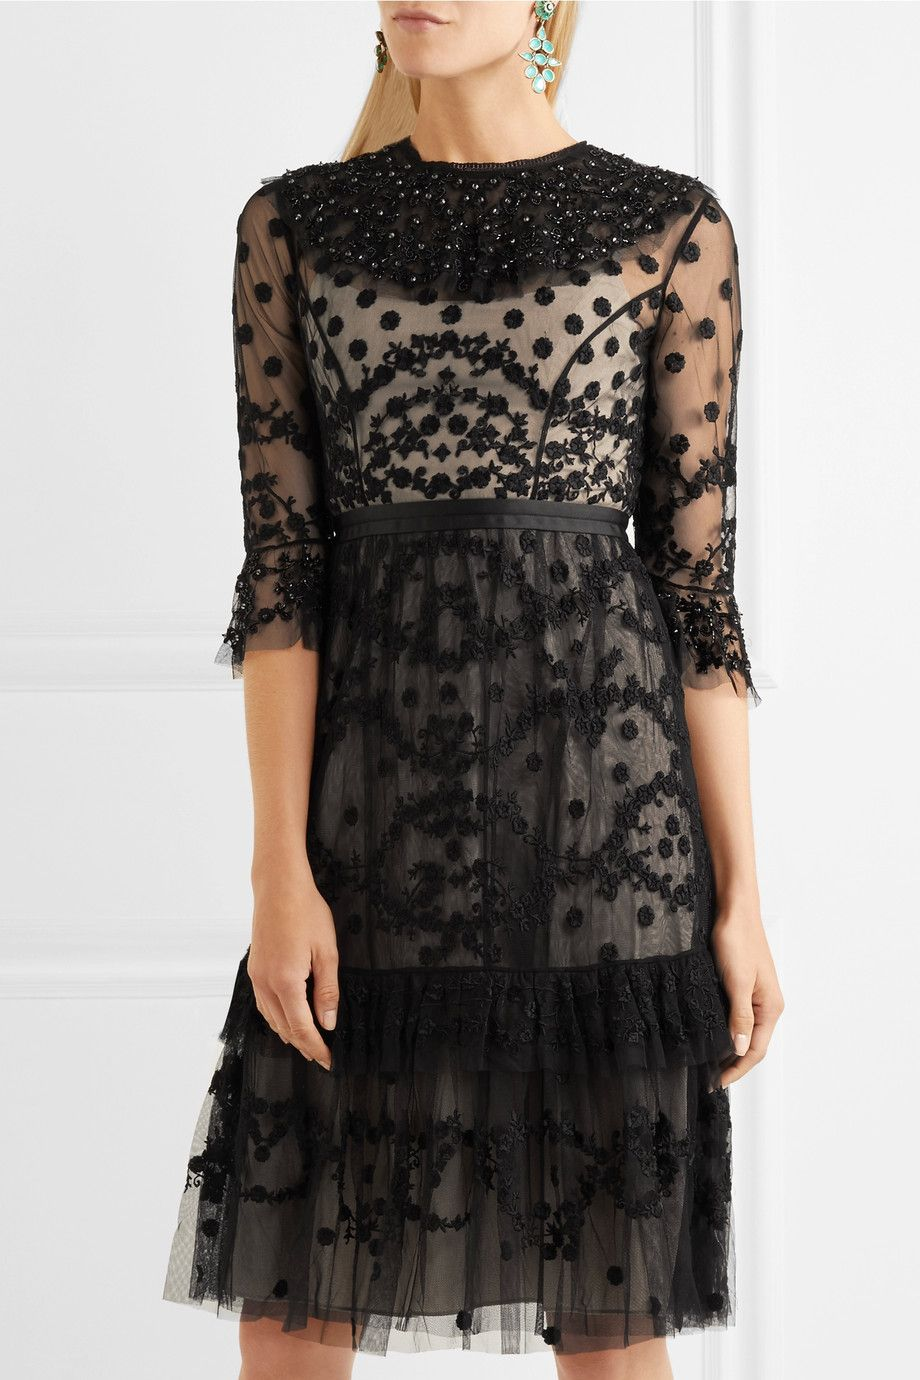 Explore For Sale Clearance Nicekicks Shadow Embellished Lace Dress - Black Needle & Thread Free Shipping Enjoy EQuJF7KmC